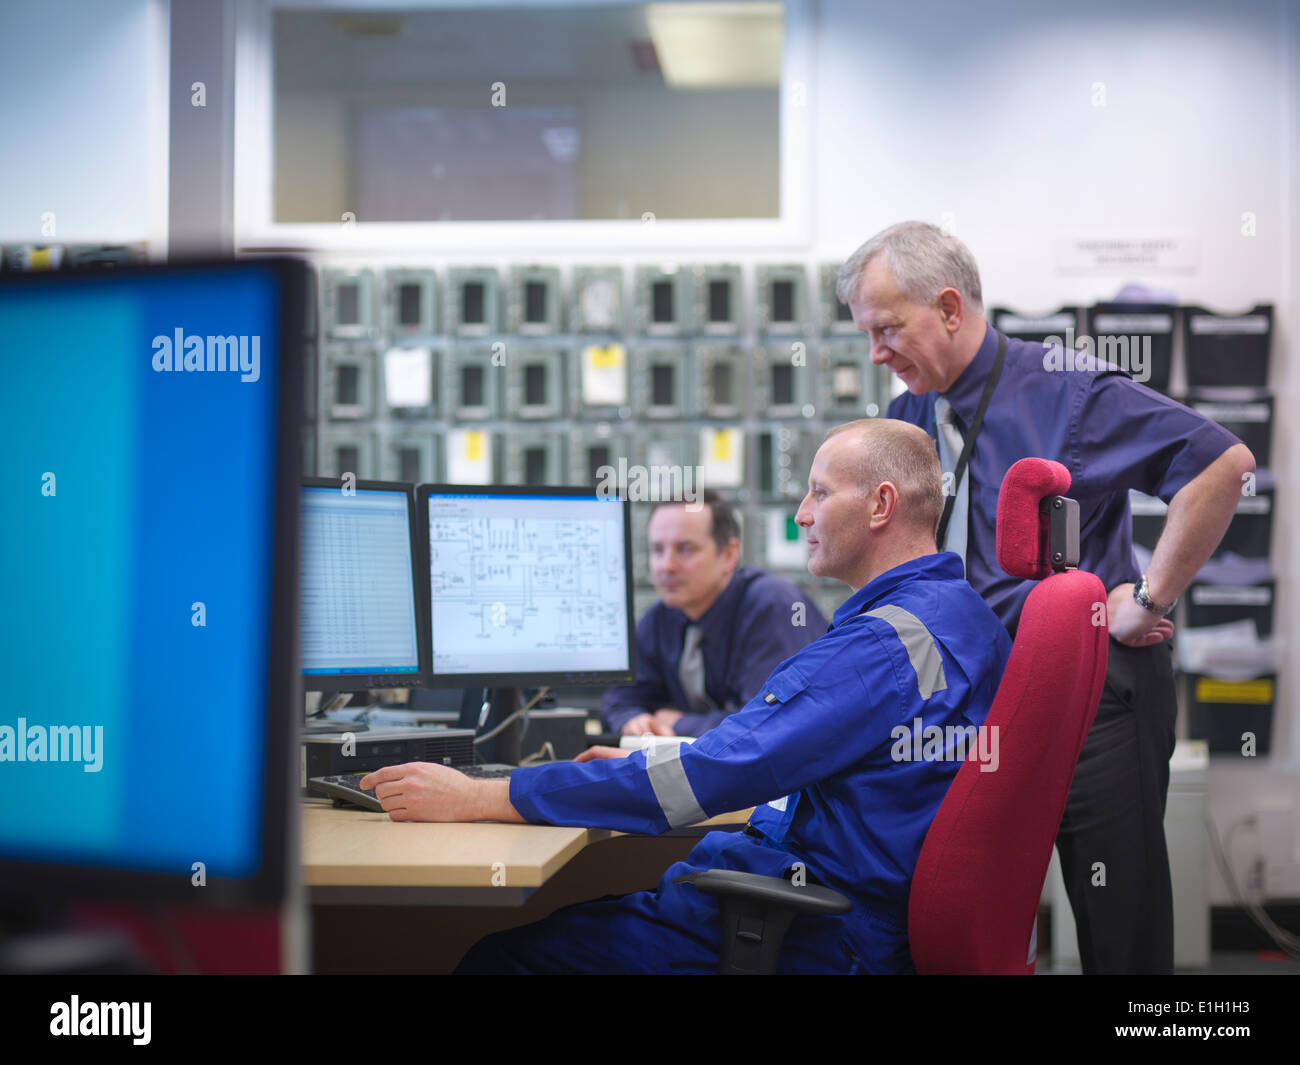 Engineers in meeting in nuclear power station - Stock Image